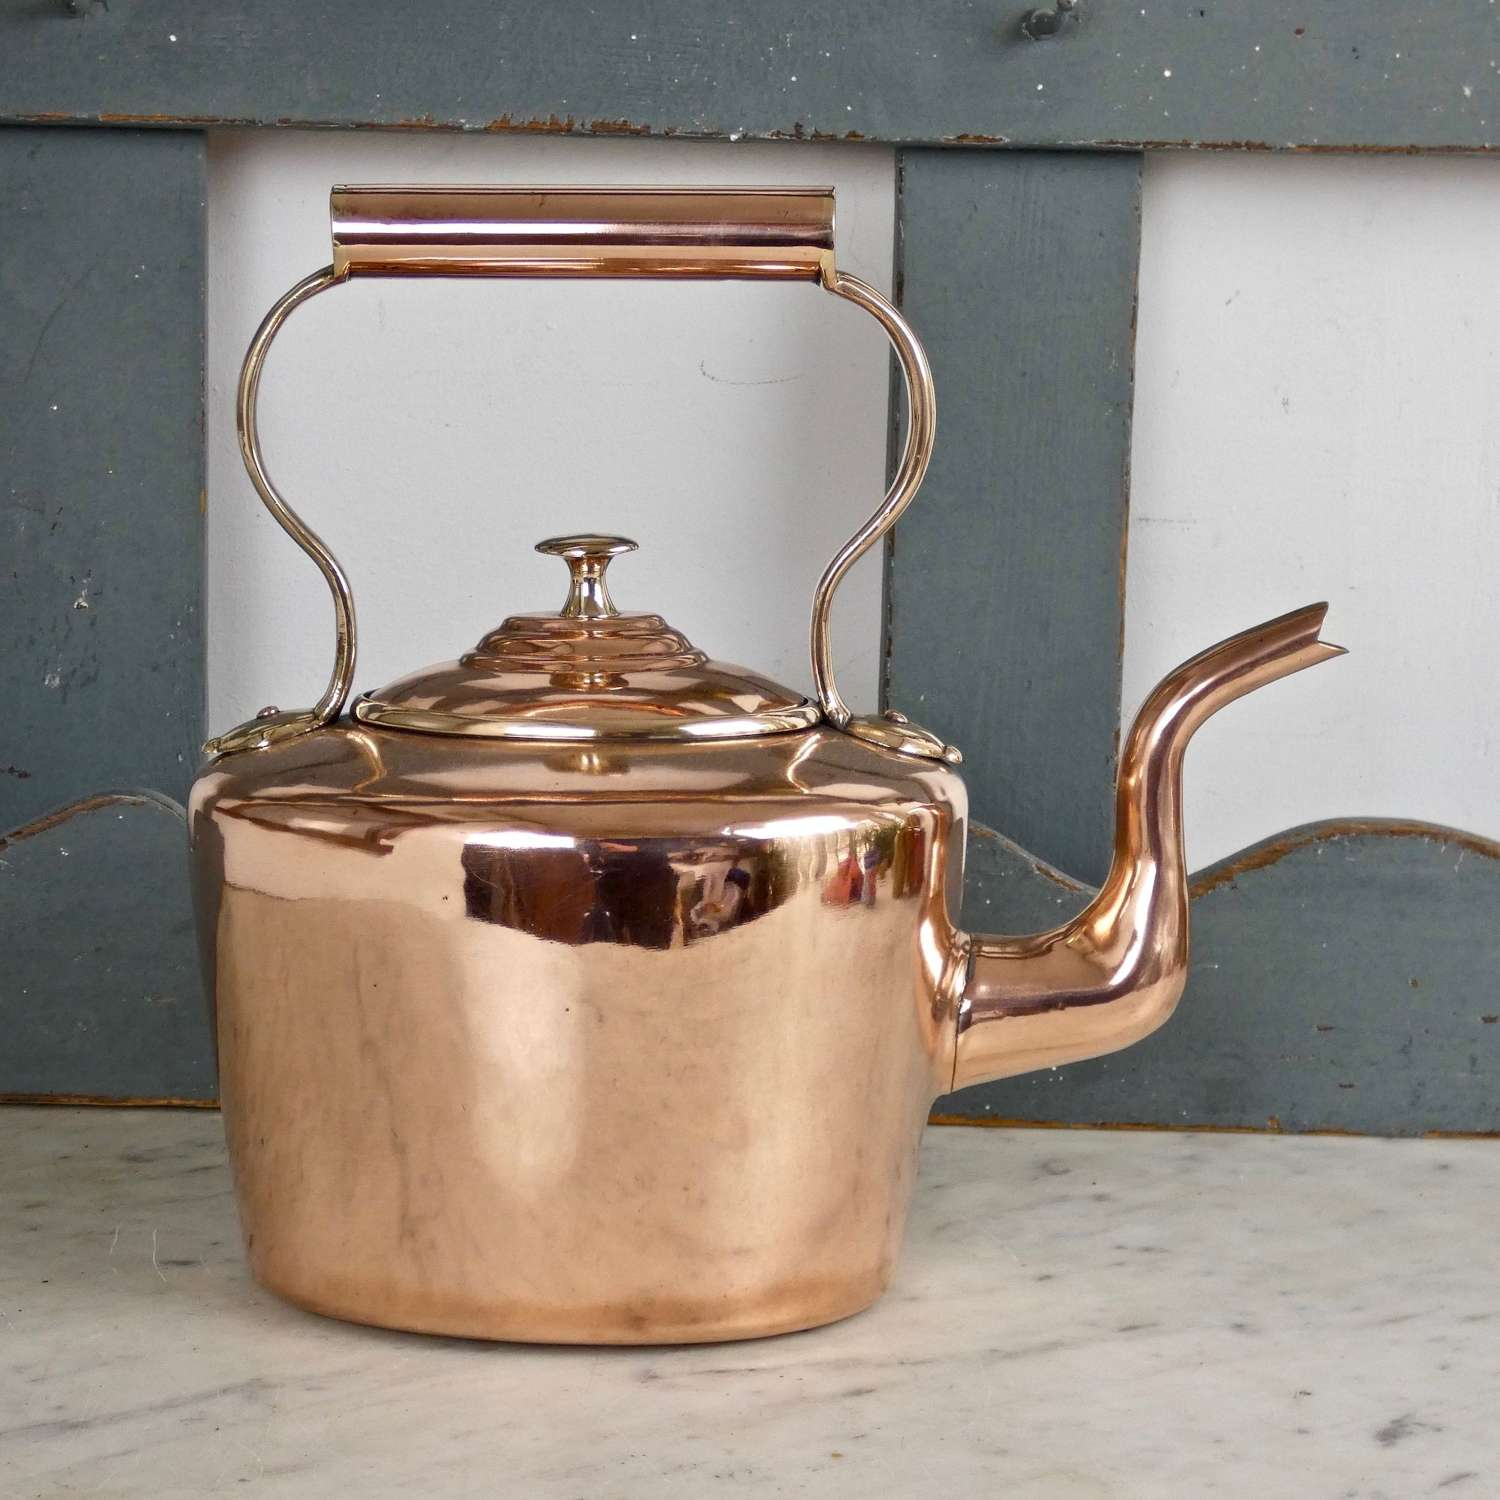 Oval, Victorian copper kettle